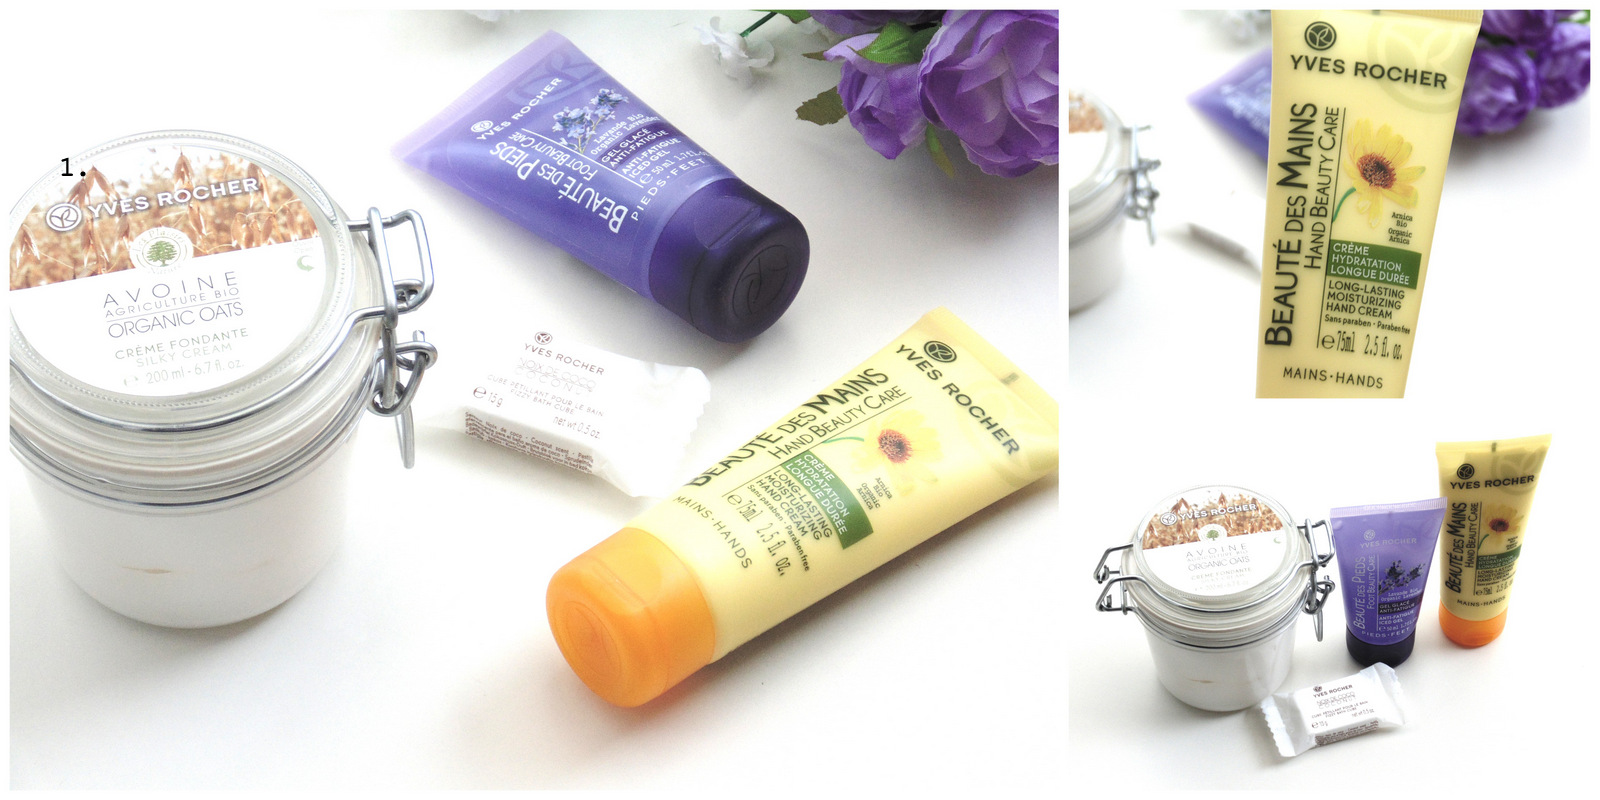 My Current Pamper Products Ft. Yves Rocher